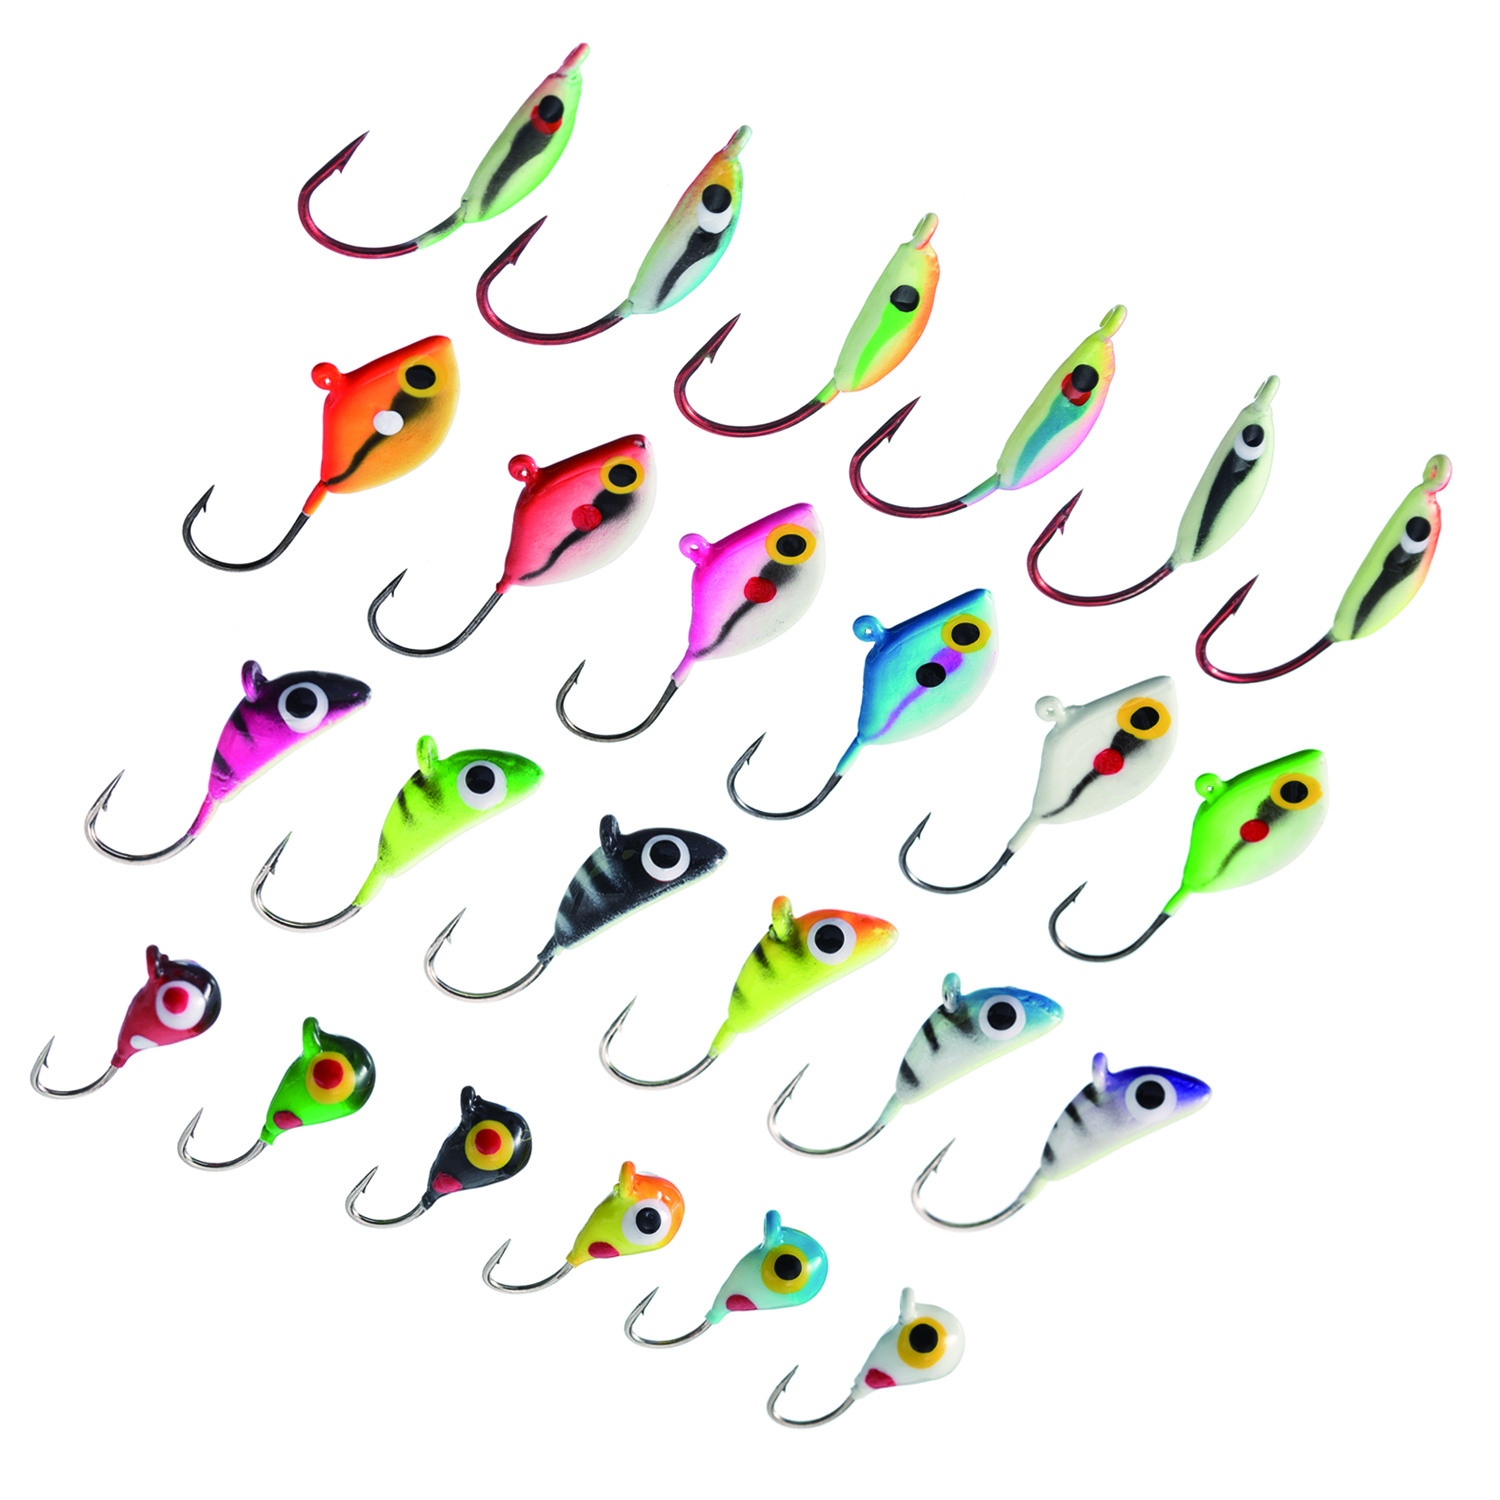 Artificial Walleye Swim Jigs Soft Body Ice Fishing Hooks Winter Fish Lures